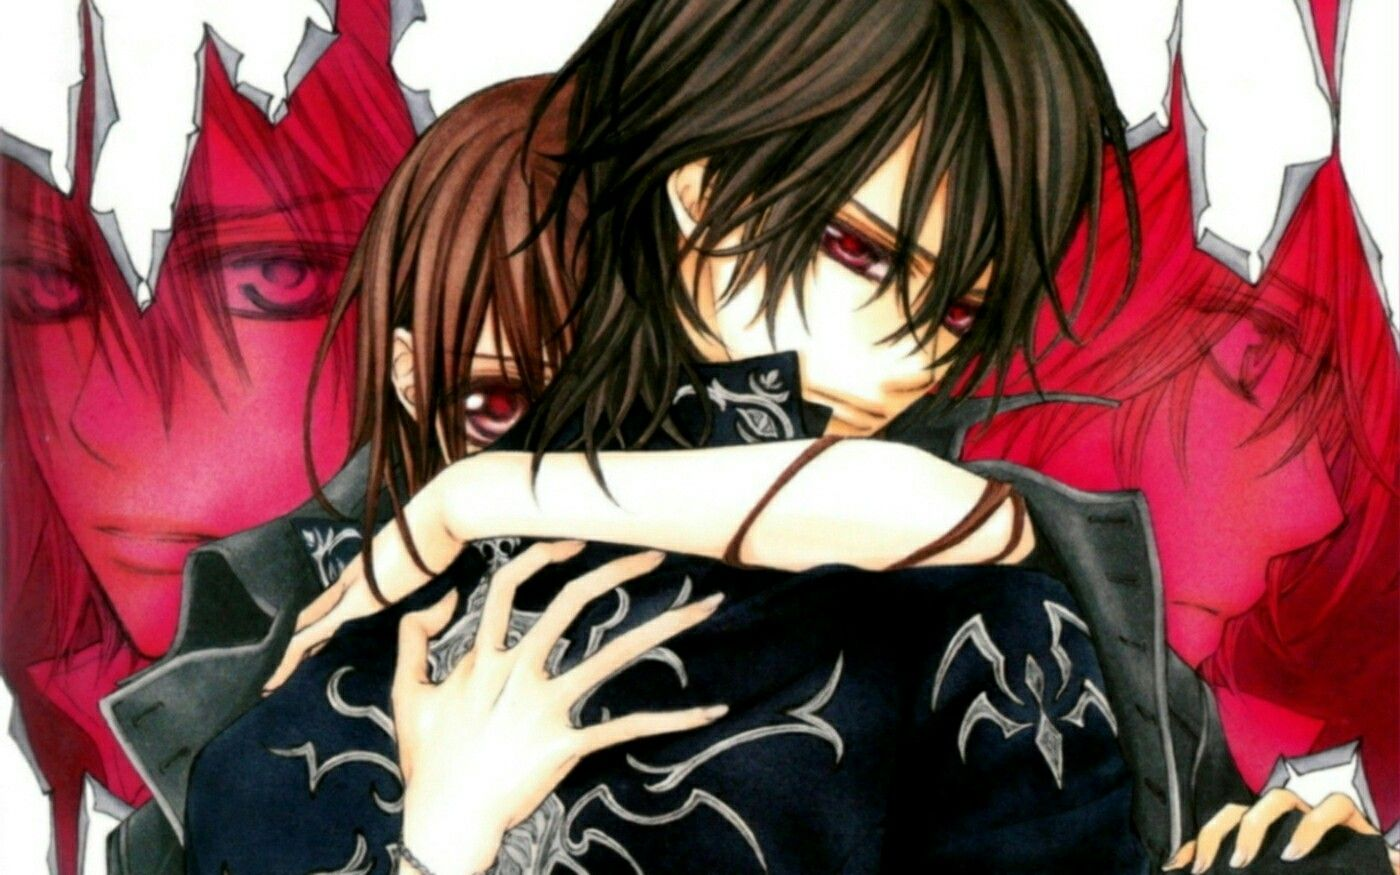 Pin by Ala Ala on Anime Vampire knight, Full hd pictures